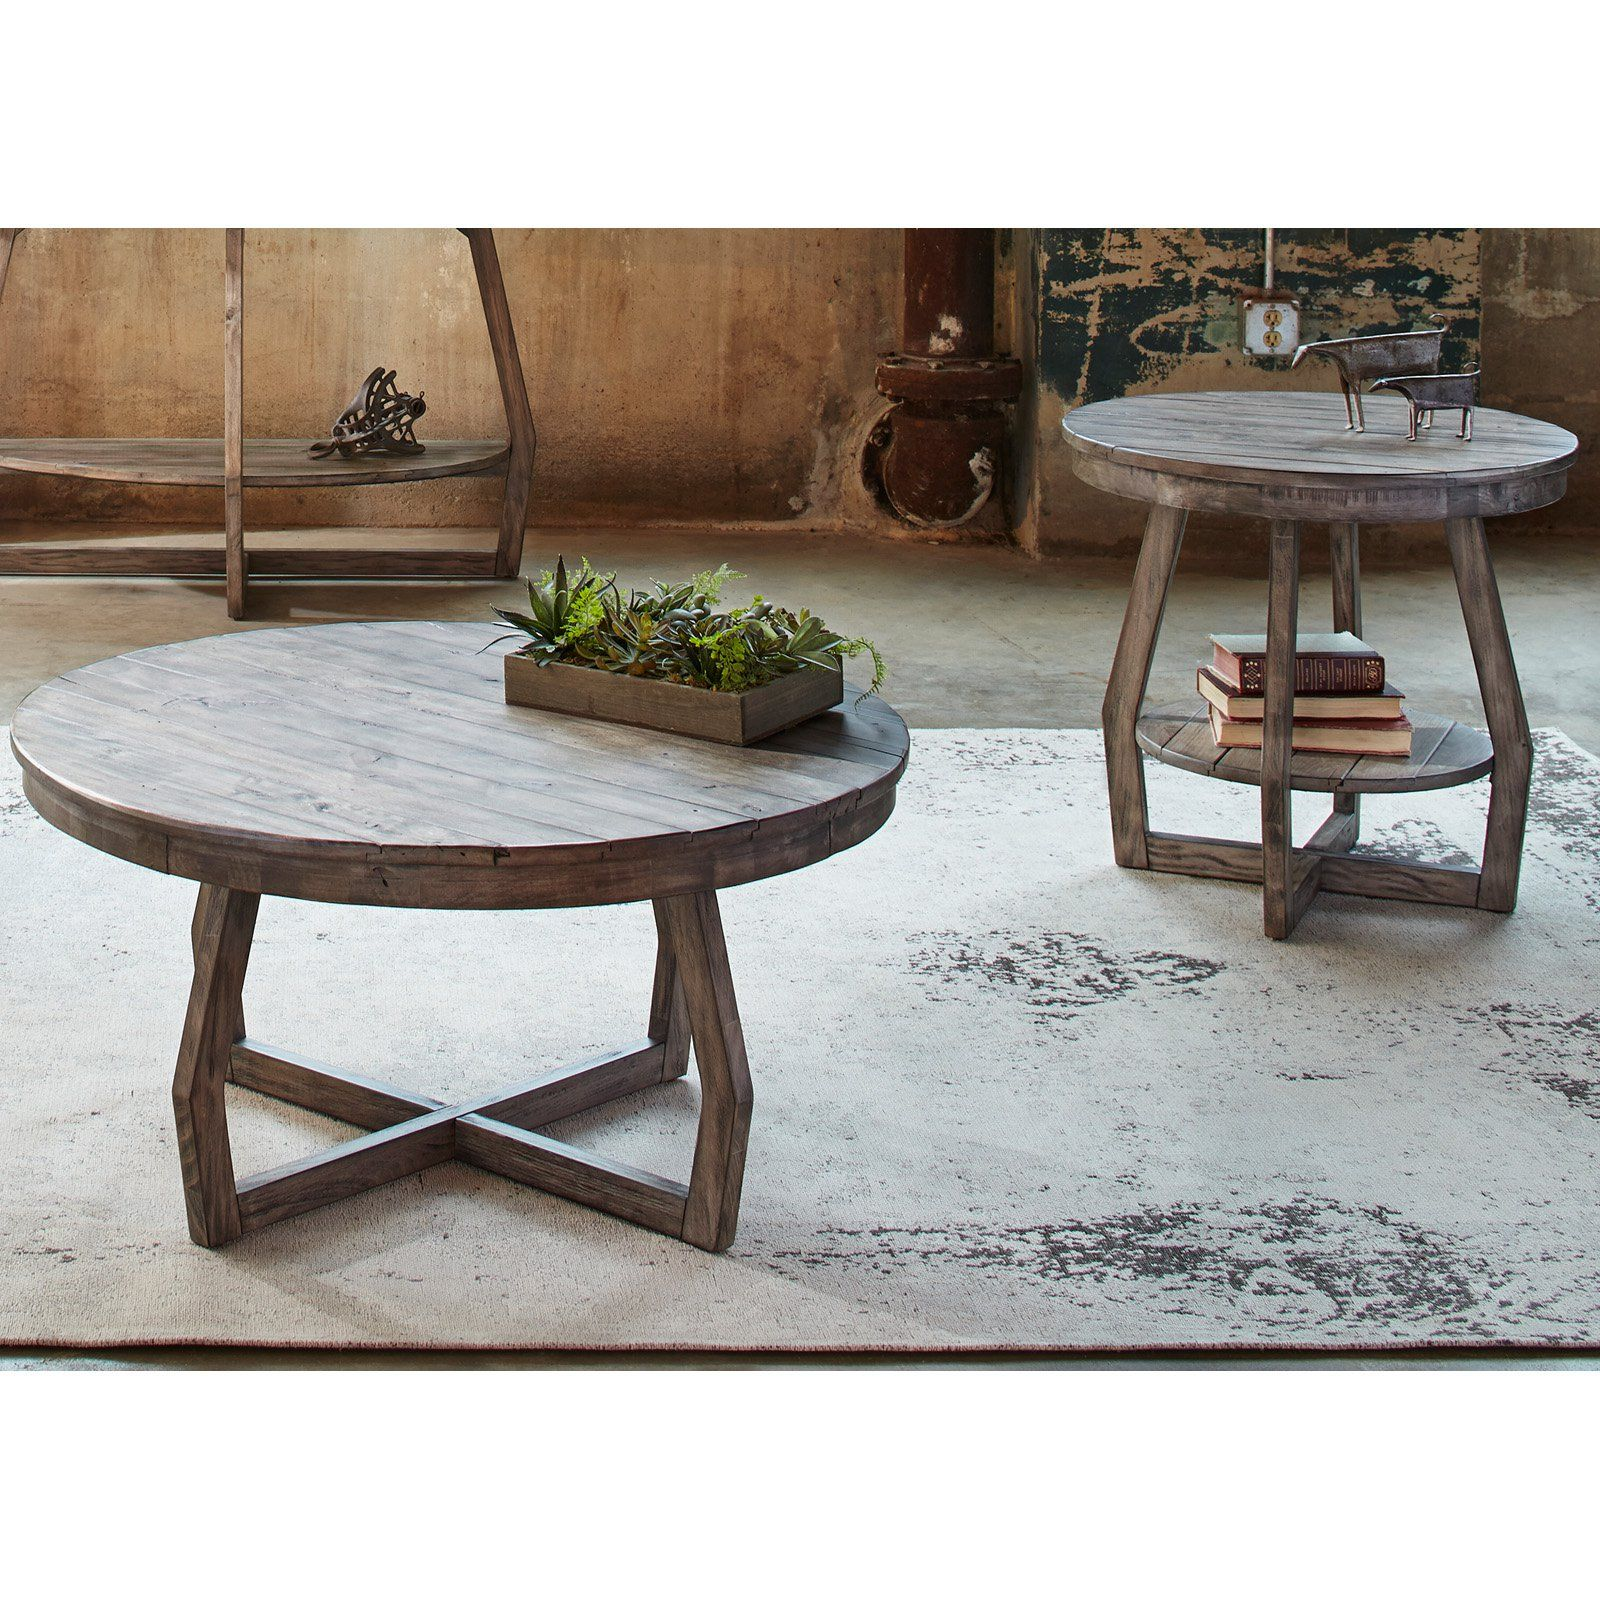 Liberty Furniture Hayden Way Cocktail Table In 2021 Liberty Furniture Reclaimed Wood Coffee Table Round Coffee Table Sets [ 1600 x 1600 Pixel ]